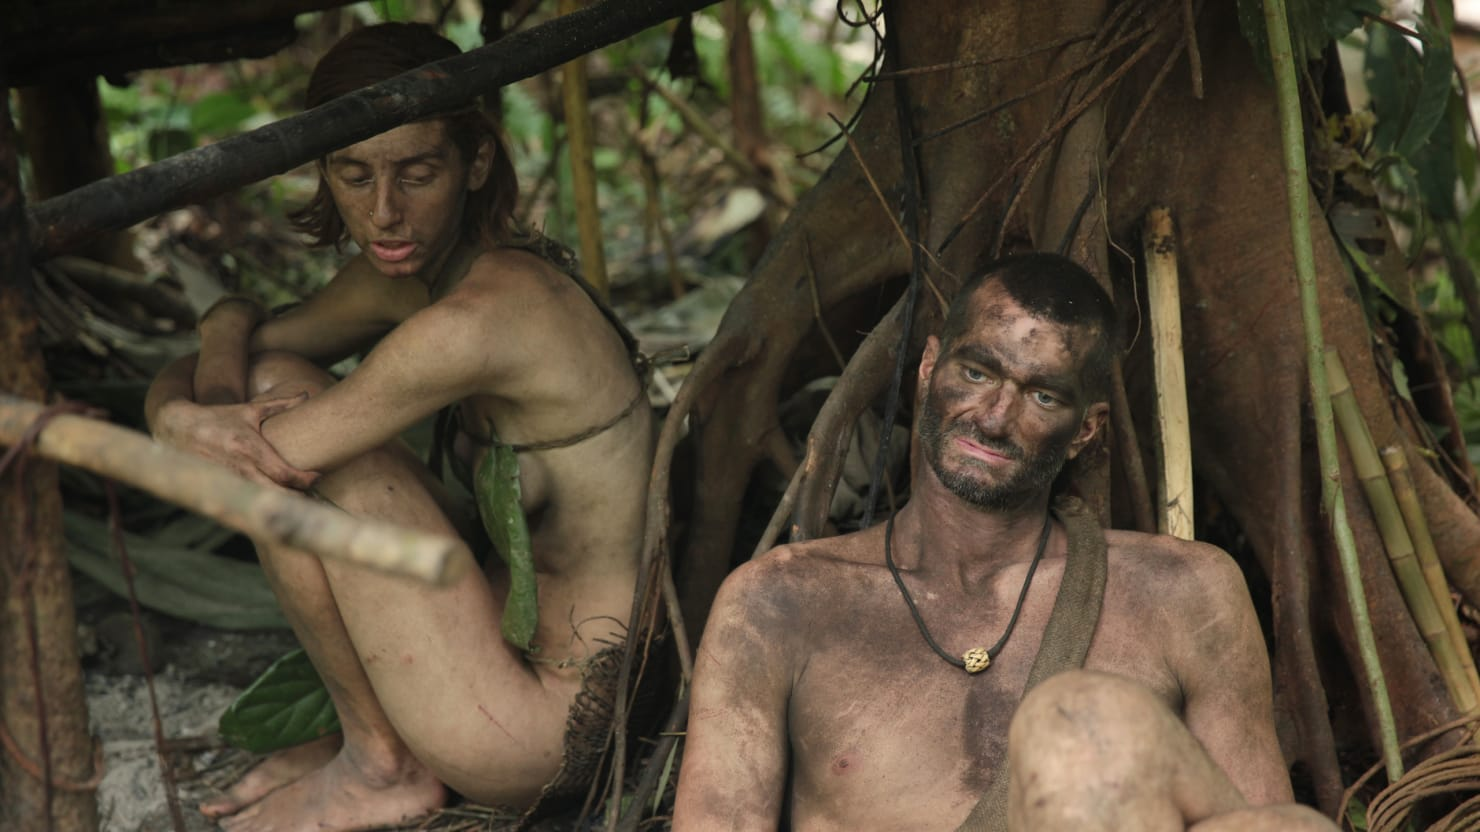 'Naked and Afraid' Is the Craziest Show on TV—You Just Have to Watch